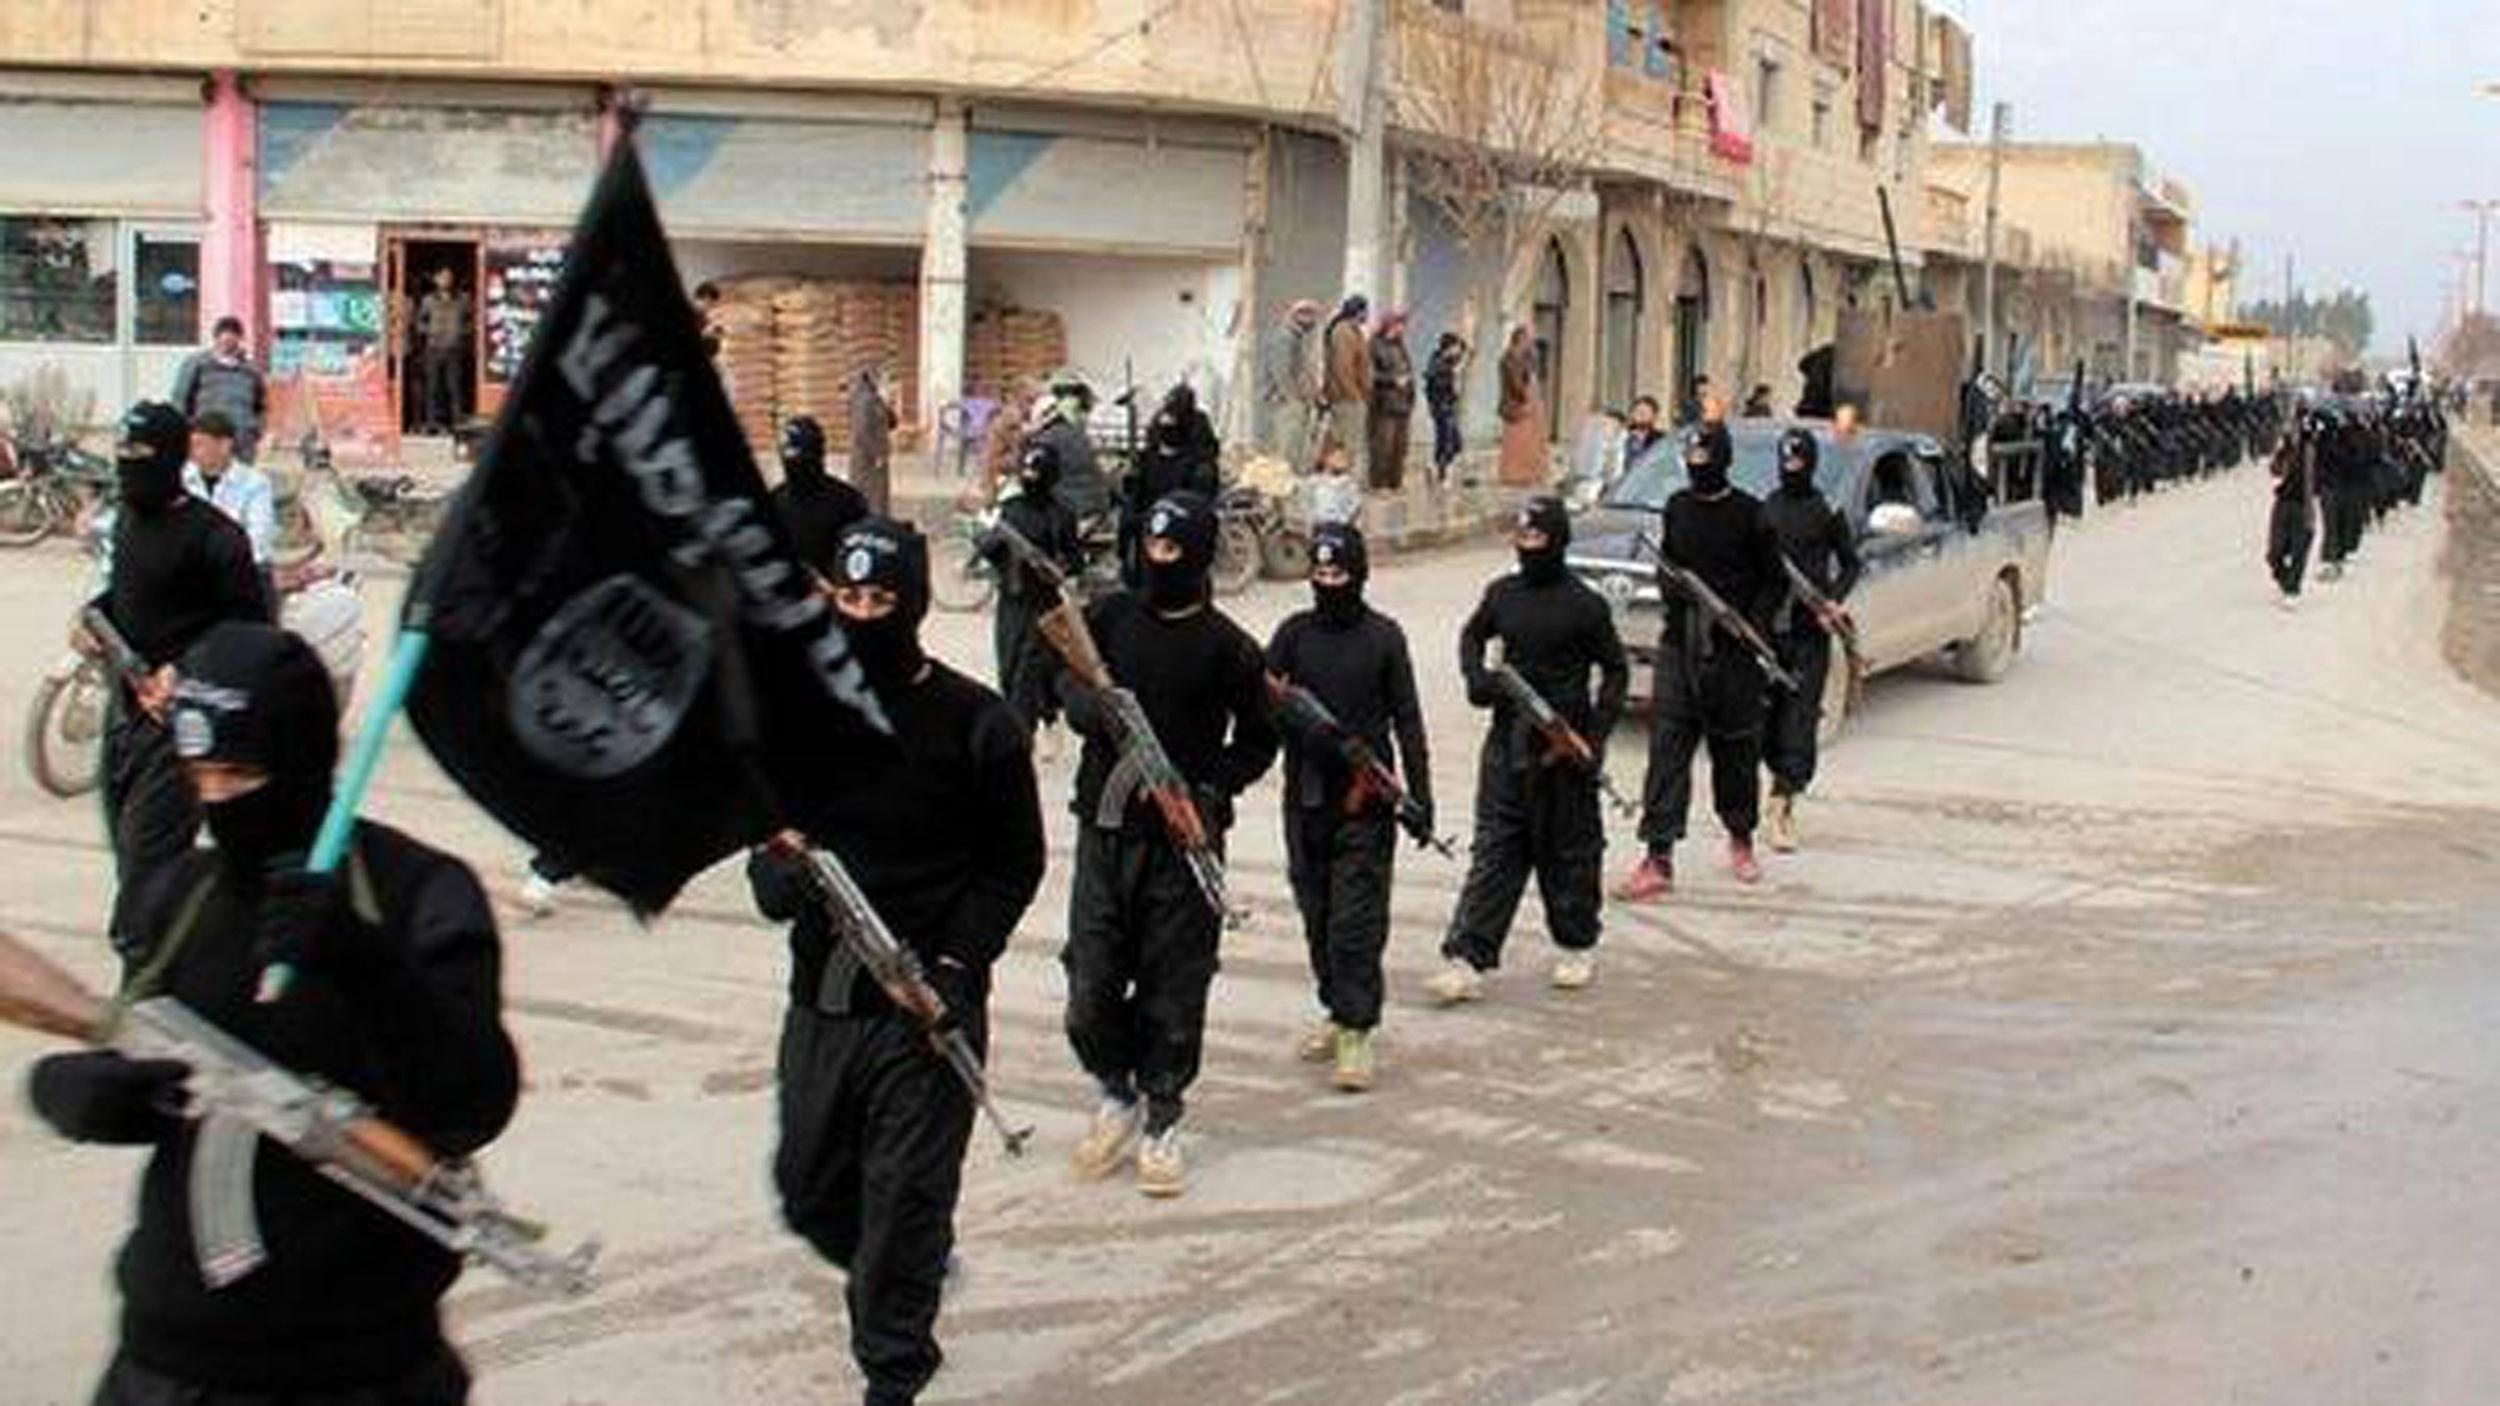 Image: Fighters from the al-Qaida linked Islamic State of Iraq and Syria (ISIS) march in Raqqa, Syria.